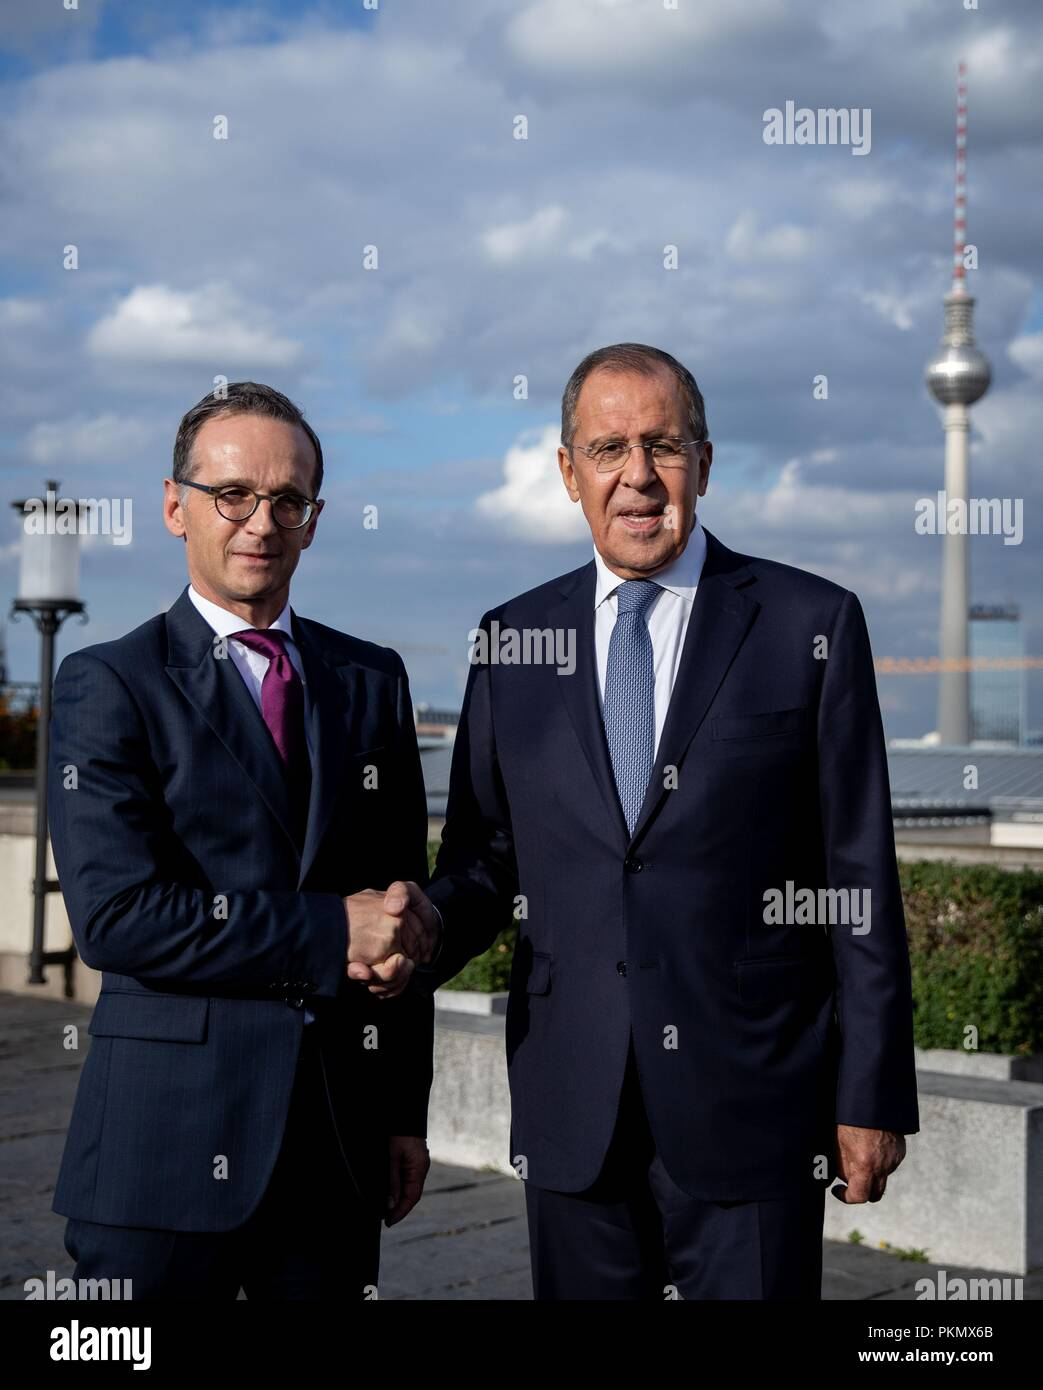 Berlin, Germany. 14 September 2018, Berlin: 14 September 2018, Germany, Berlin: Heiko Maas (SPD), German Foreign Minister, and Sergei Lavrov, Russian Foreign Minister, shake hands on the roof terrace of the Foreign Office. Earlier, Maas and Lavrov gave a press conference after an interview. Photo: Kay Nietfeld/pool/dpa Credit: dpa picture alliance/Alamy Live News - Stock Image